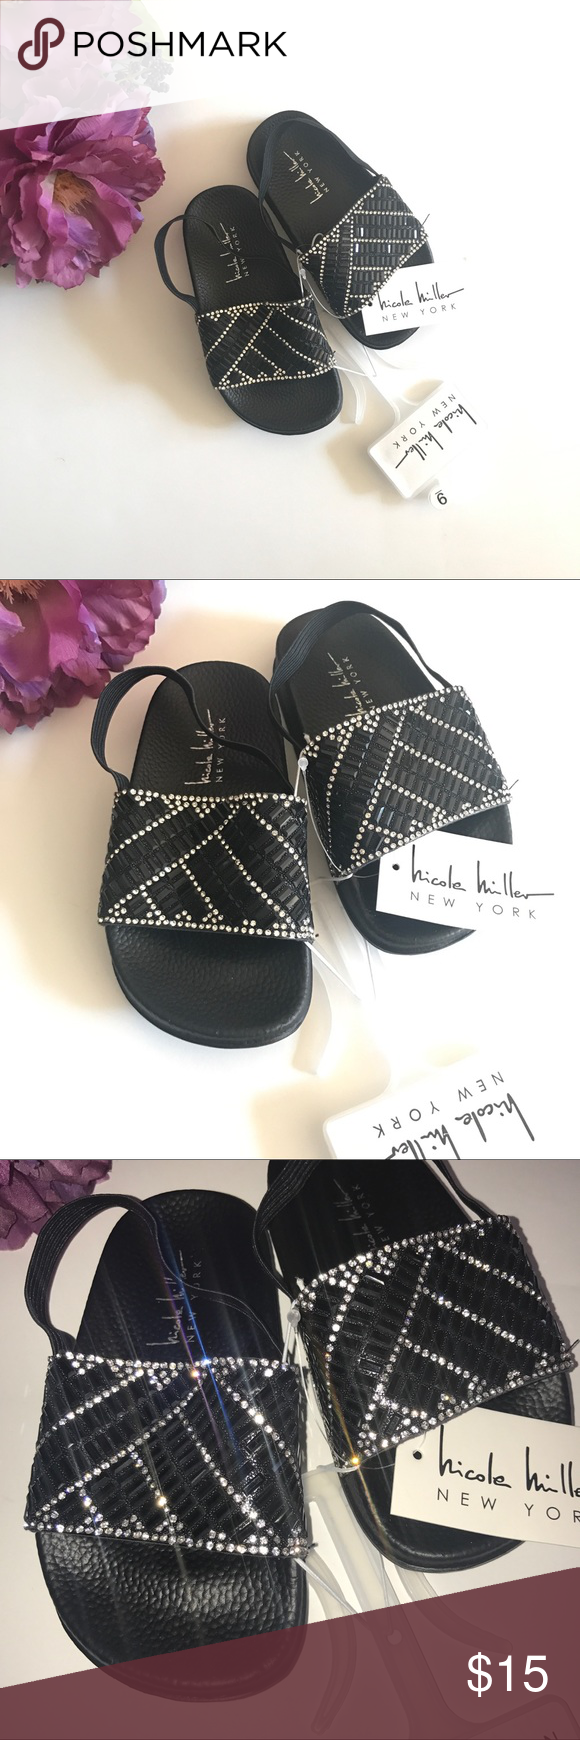 685d14f5d017d New Nicole Miller Toddler Rhinestone Slide Sandal New with tag ...